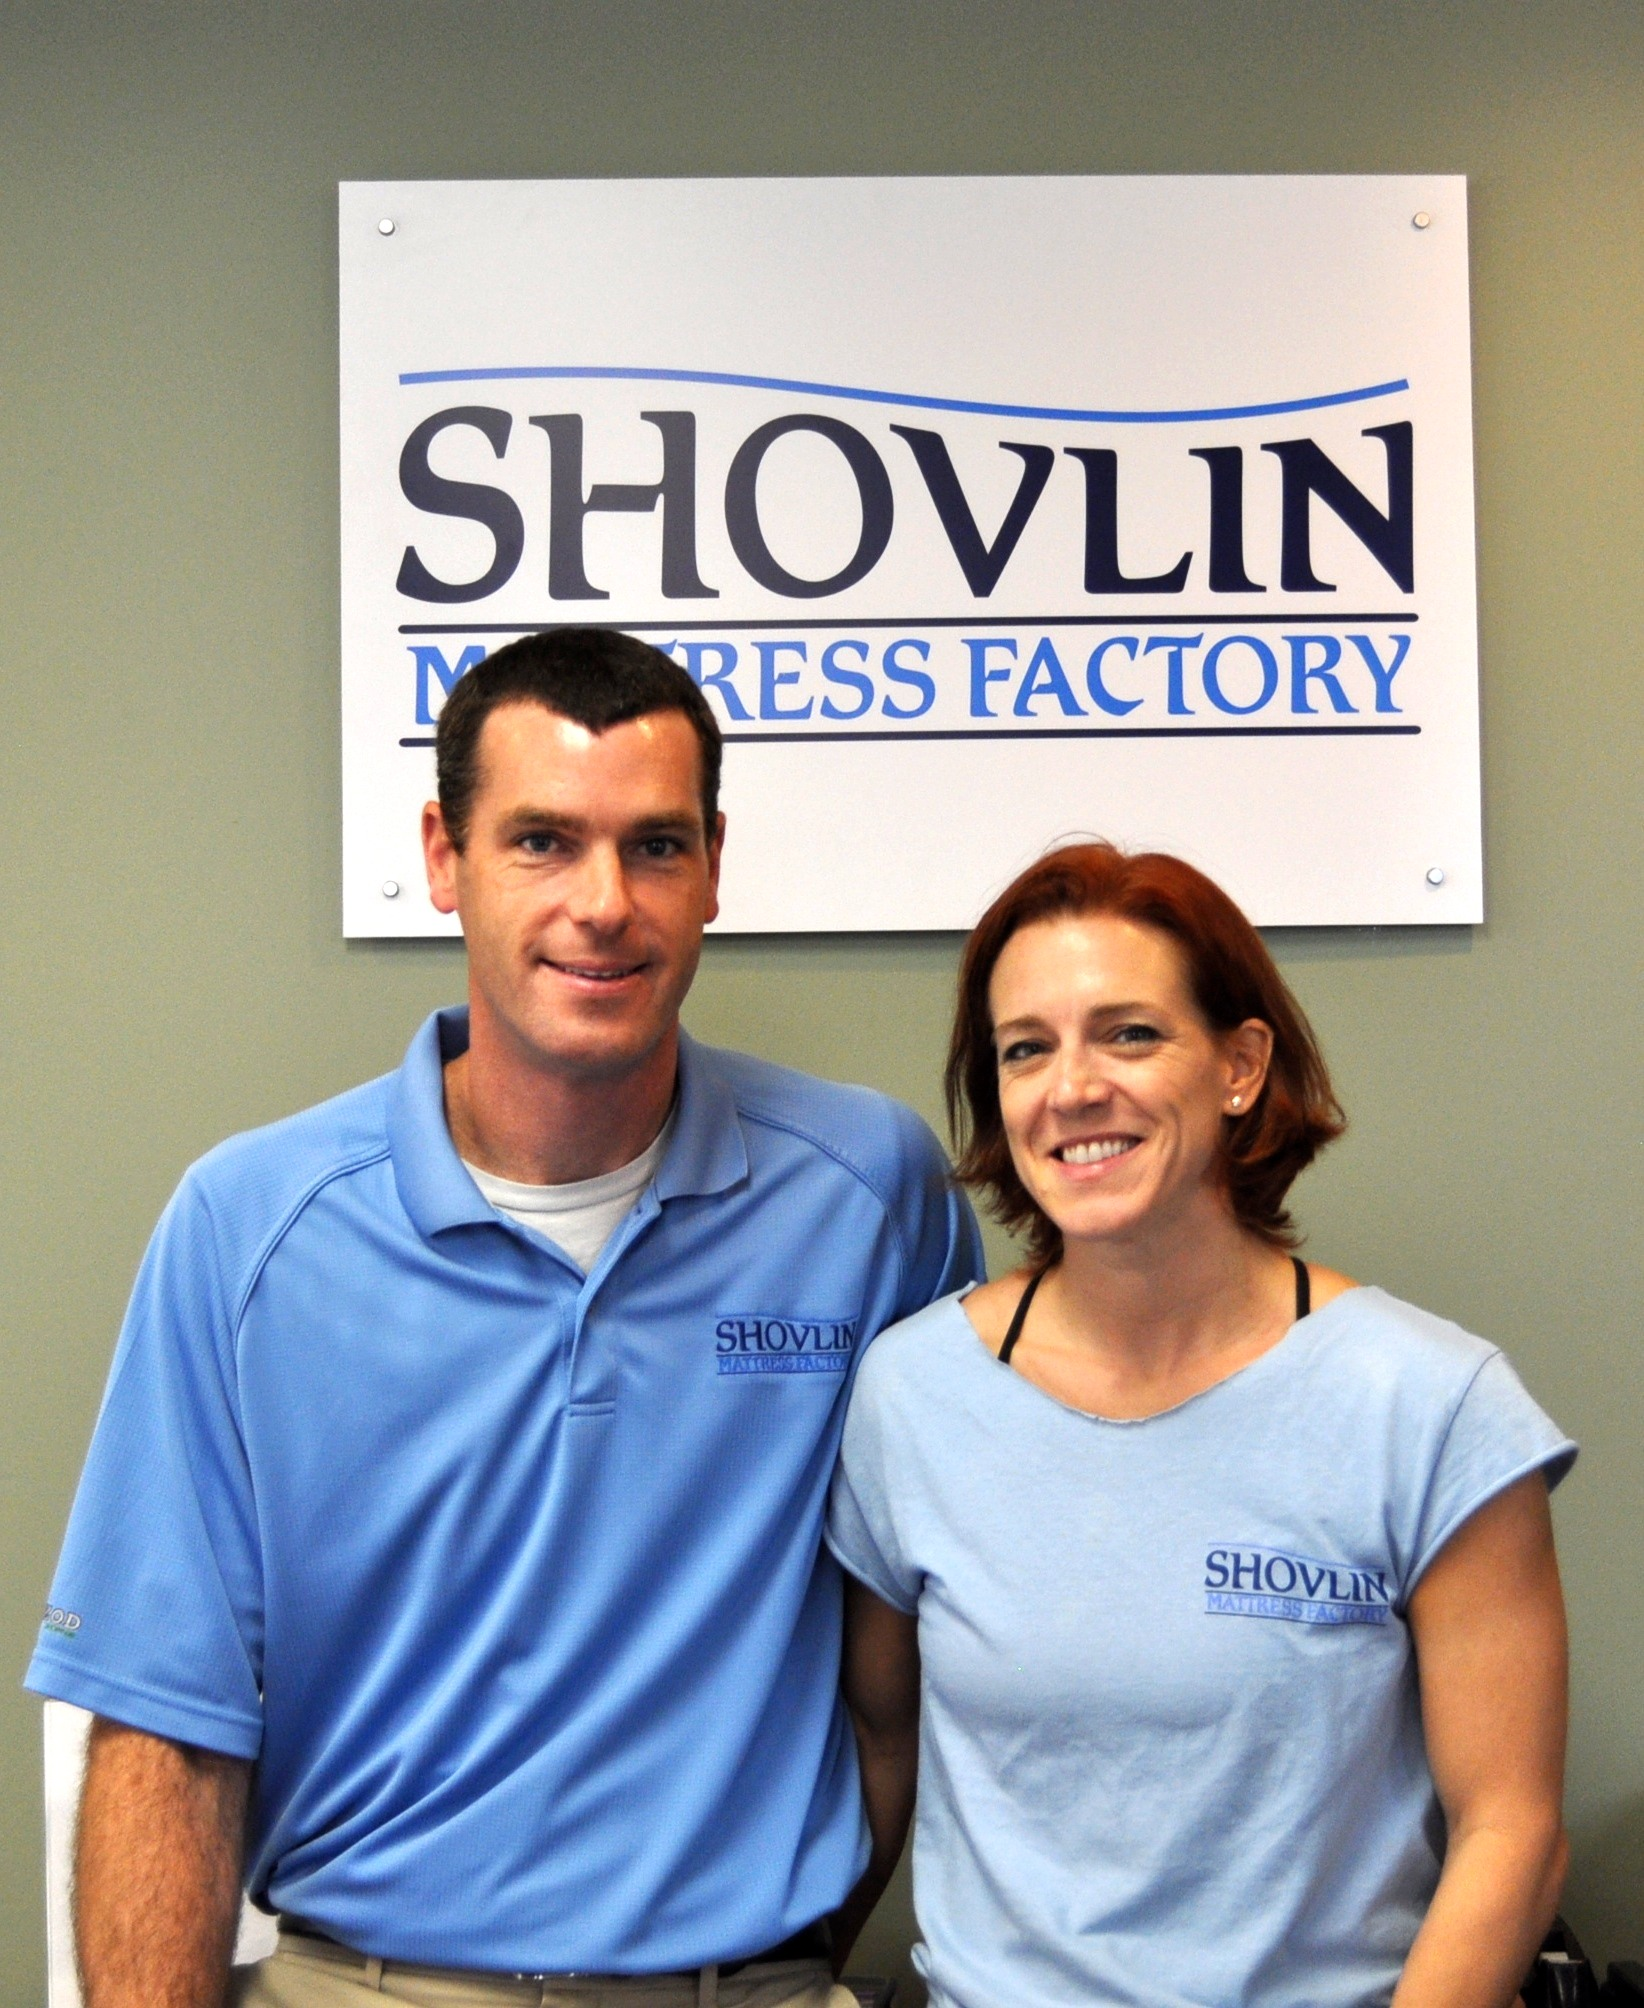 ad236459e30f44c428ad_Ron_and_Kara_Shovlin.JPG